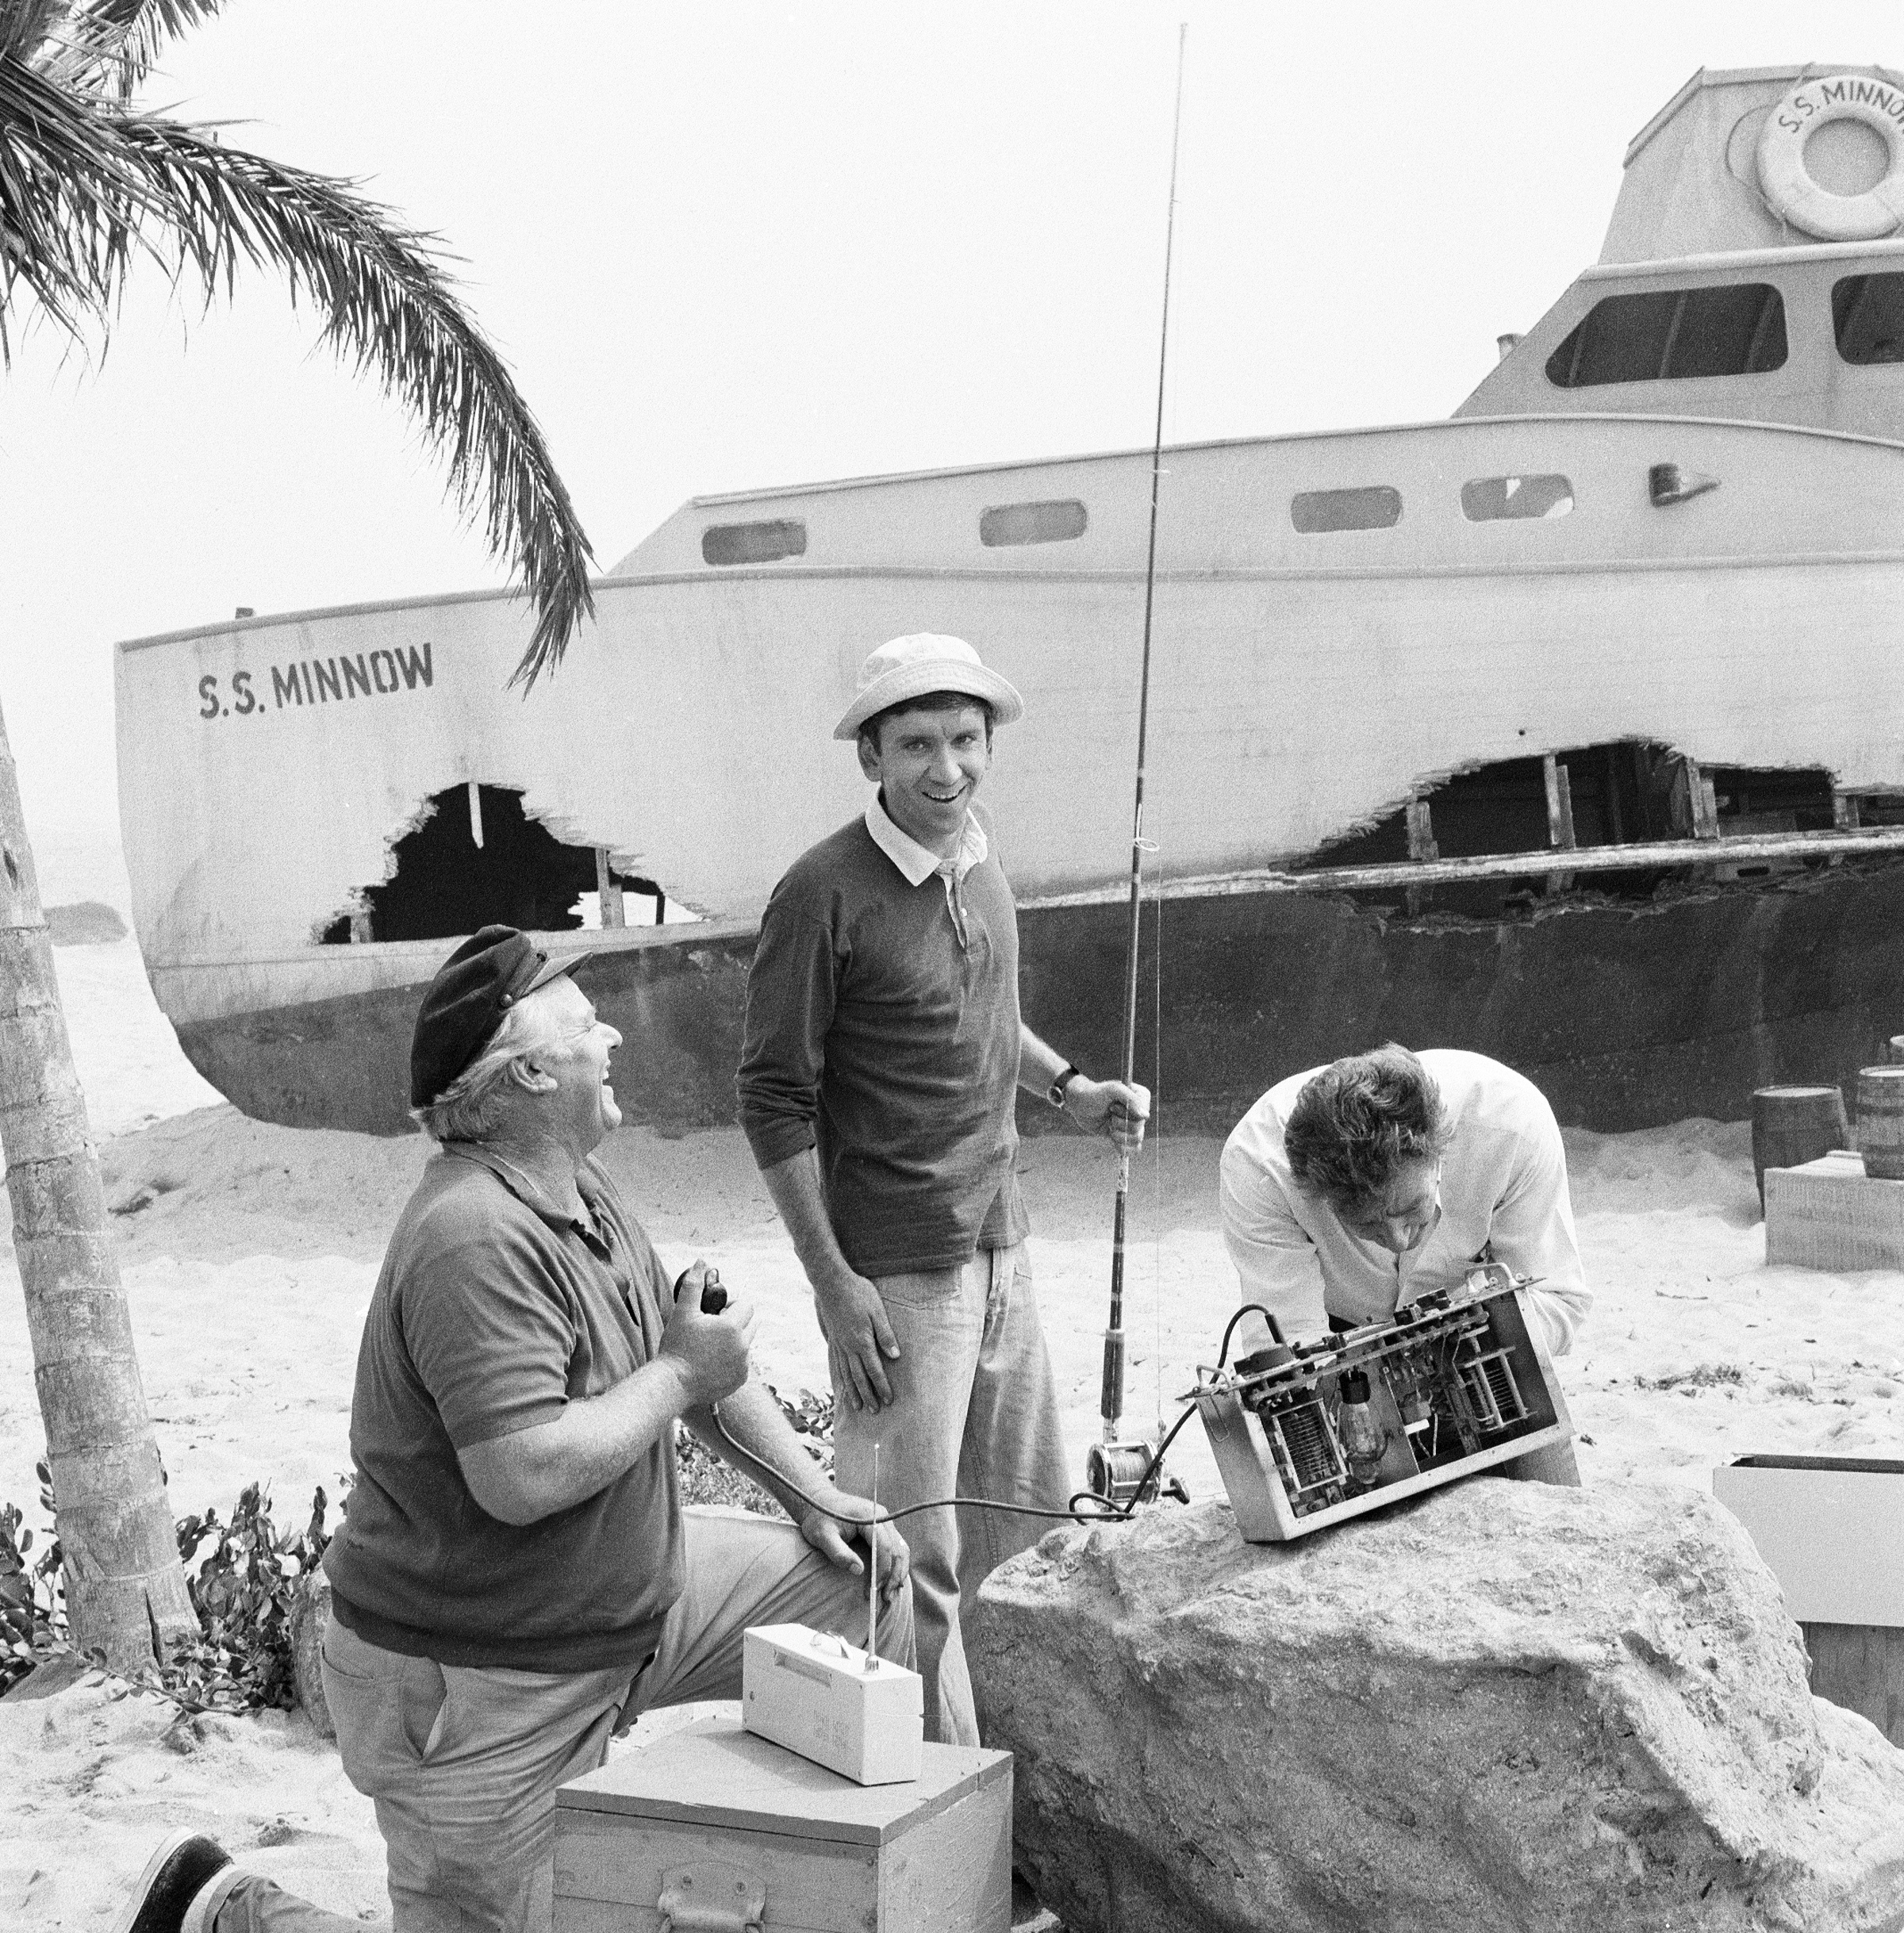 Denver To Hawaii: Little-known Facts About 'Gilligan's Island' And 'The